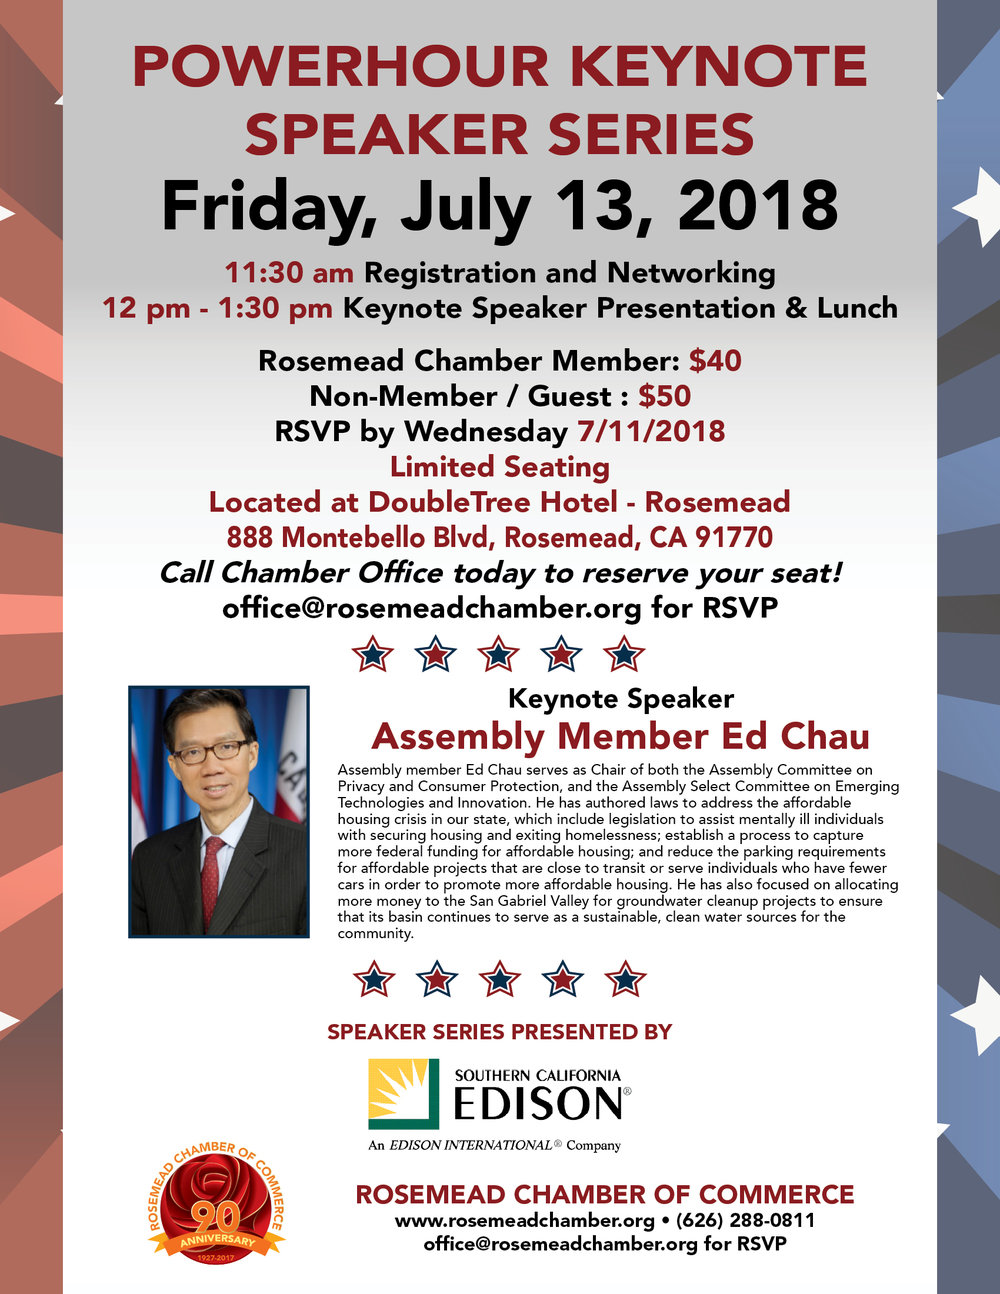 Powerhouse keynote speaker series - Friday, July 13th, 2018